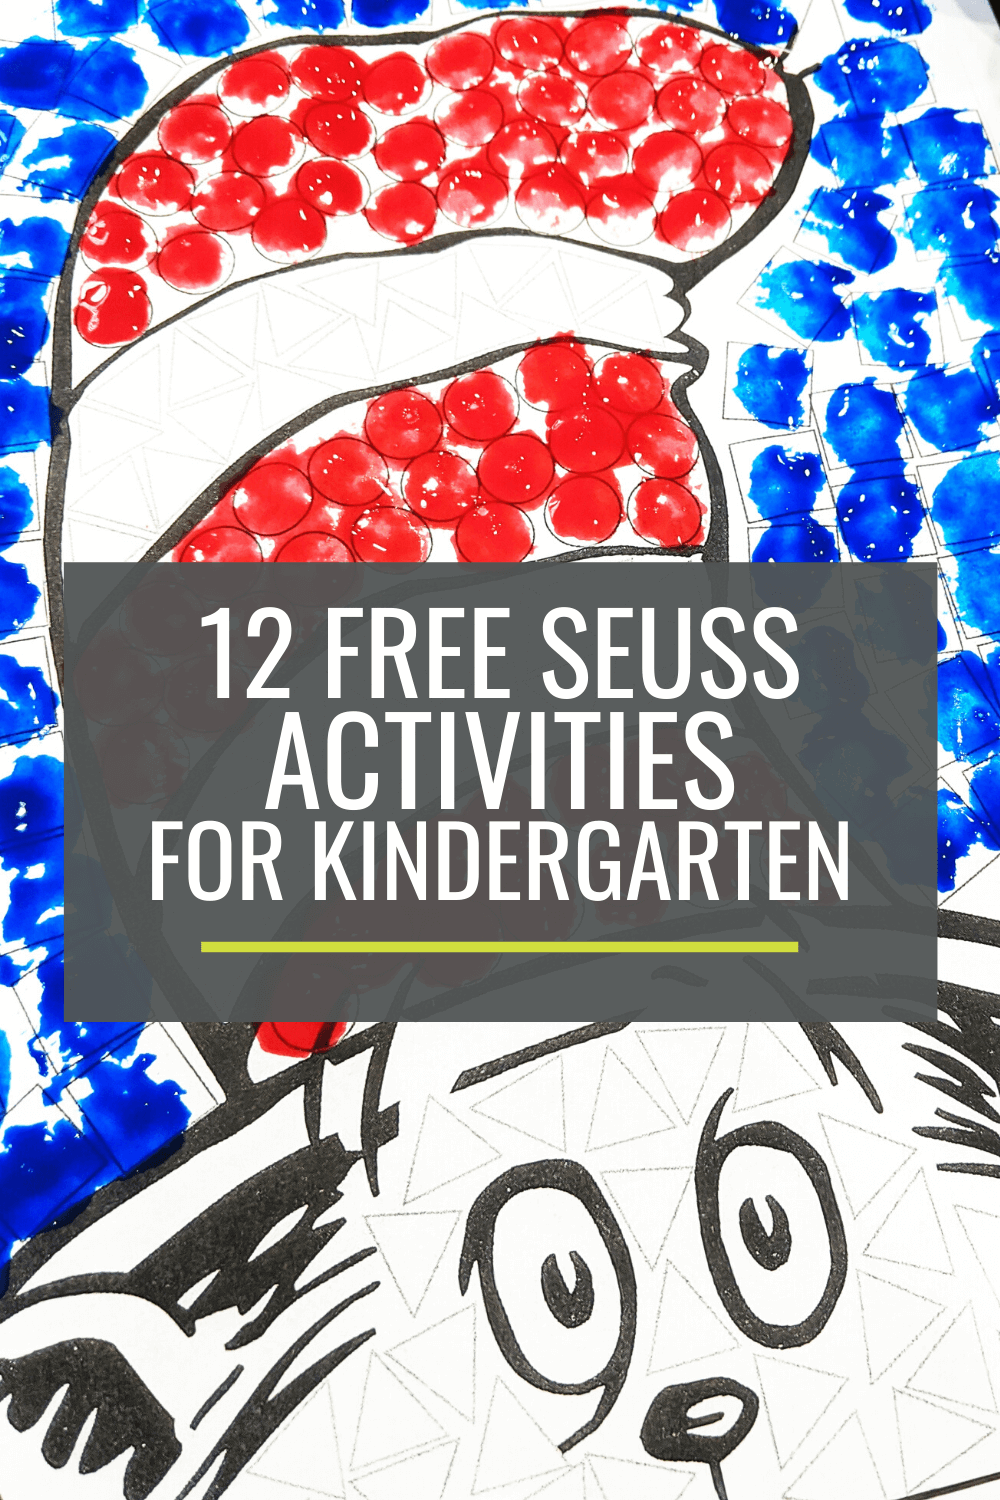 12 Free Dr. Seuss Activities for Kindergarten